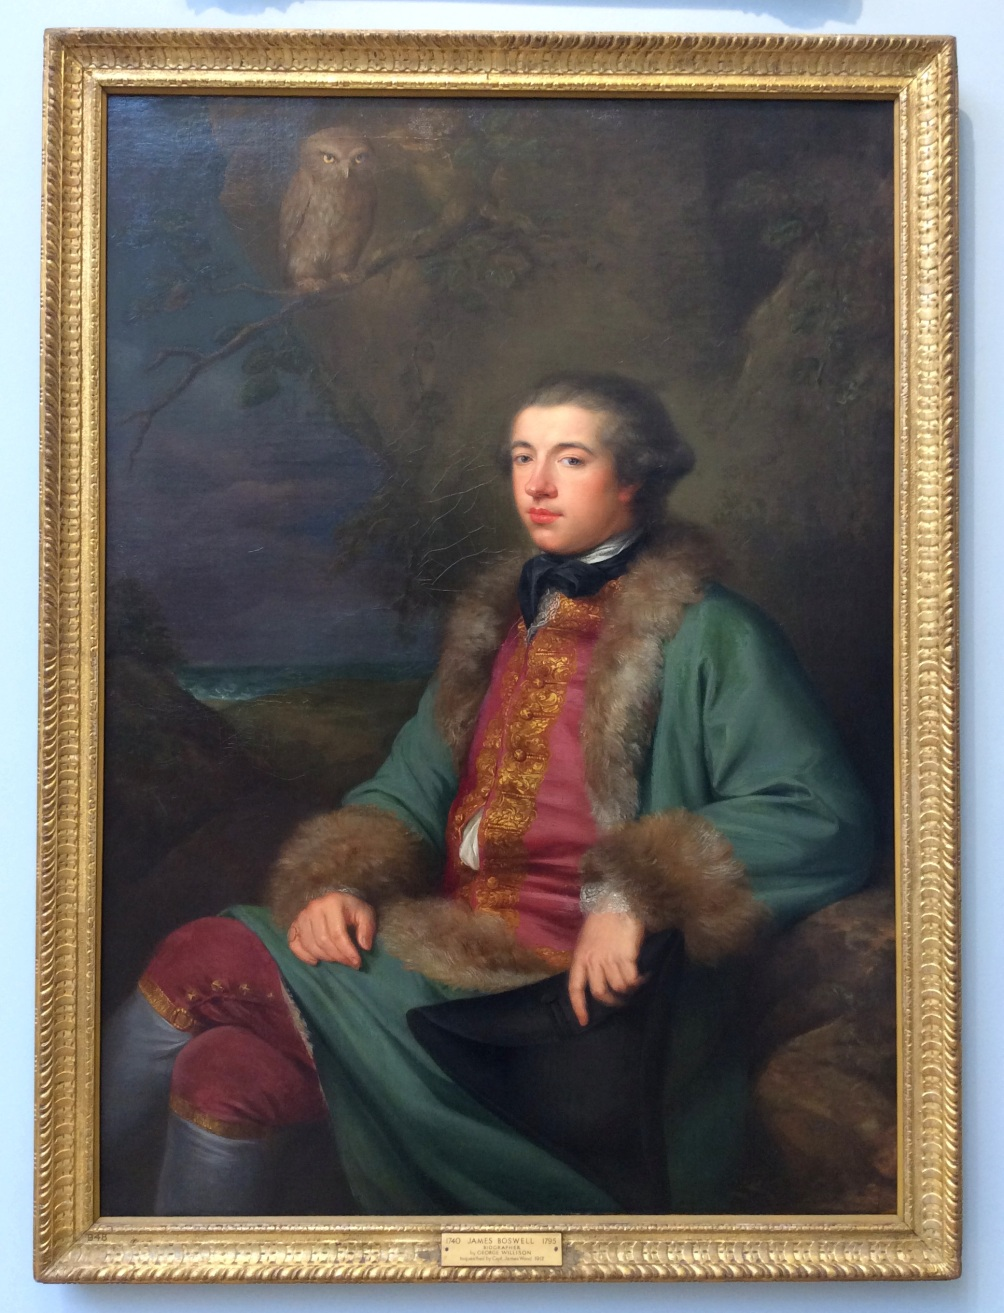 James Boswell portrait in the National Portrait Gallery, Edinburgh, 2014 Amy Cools